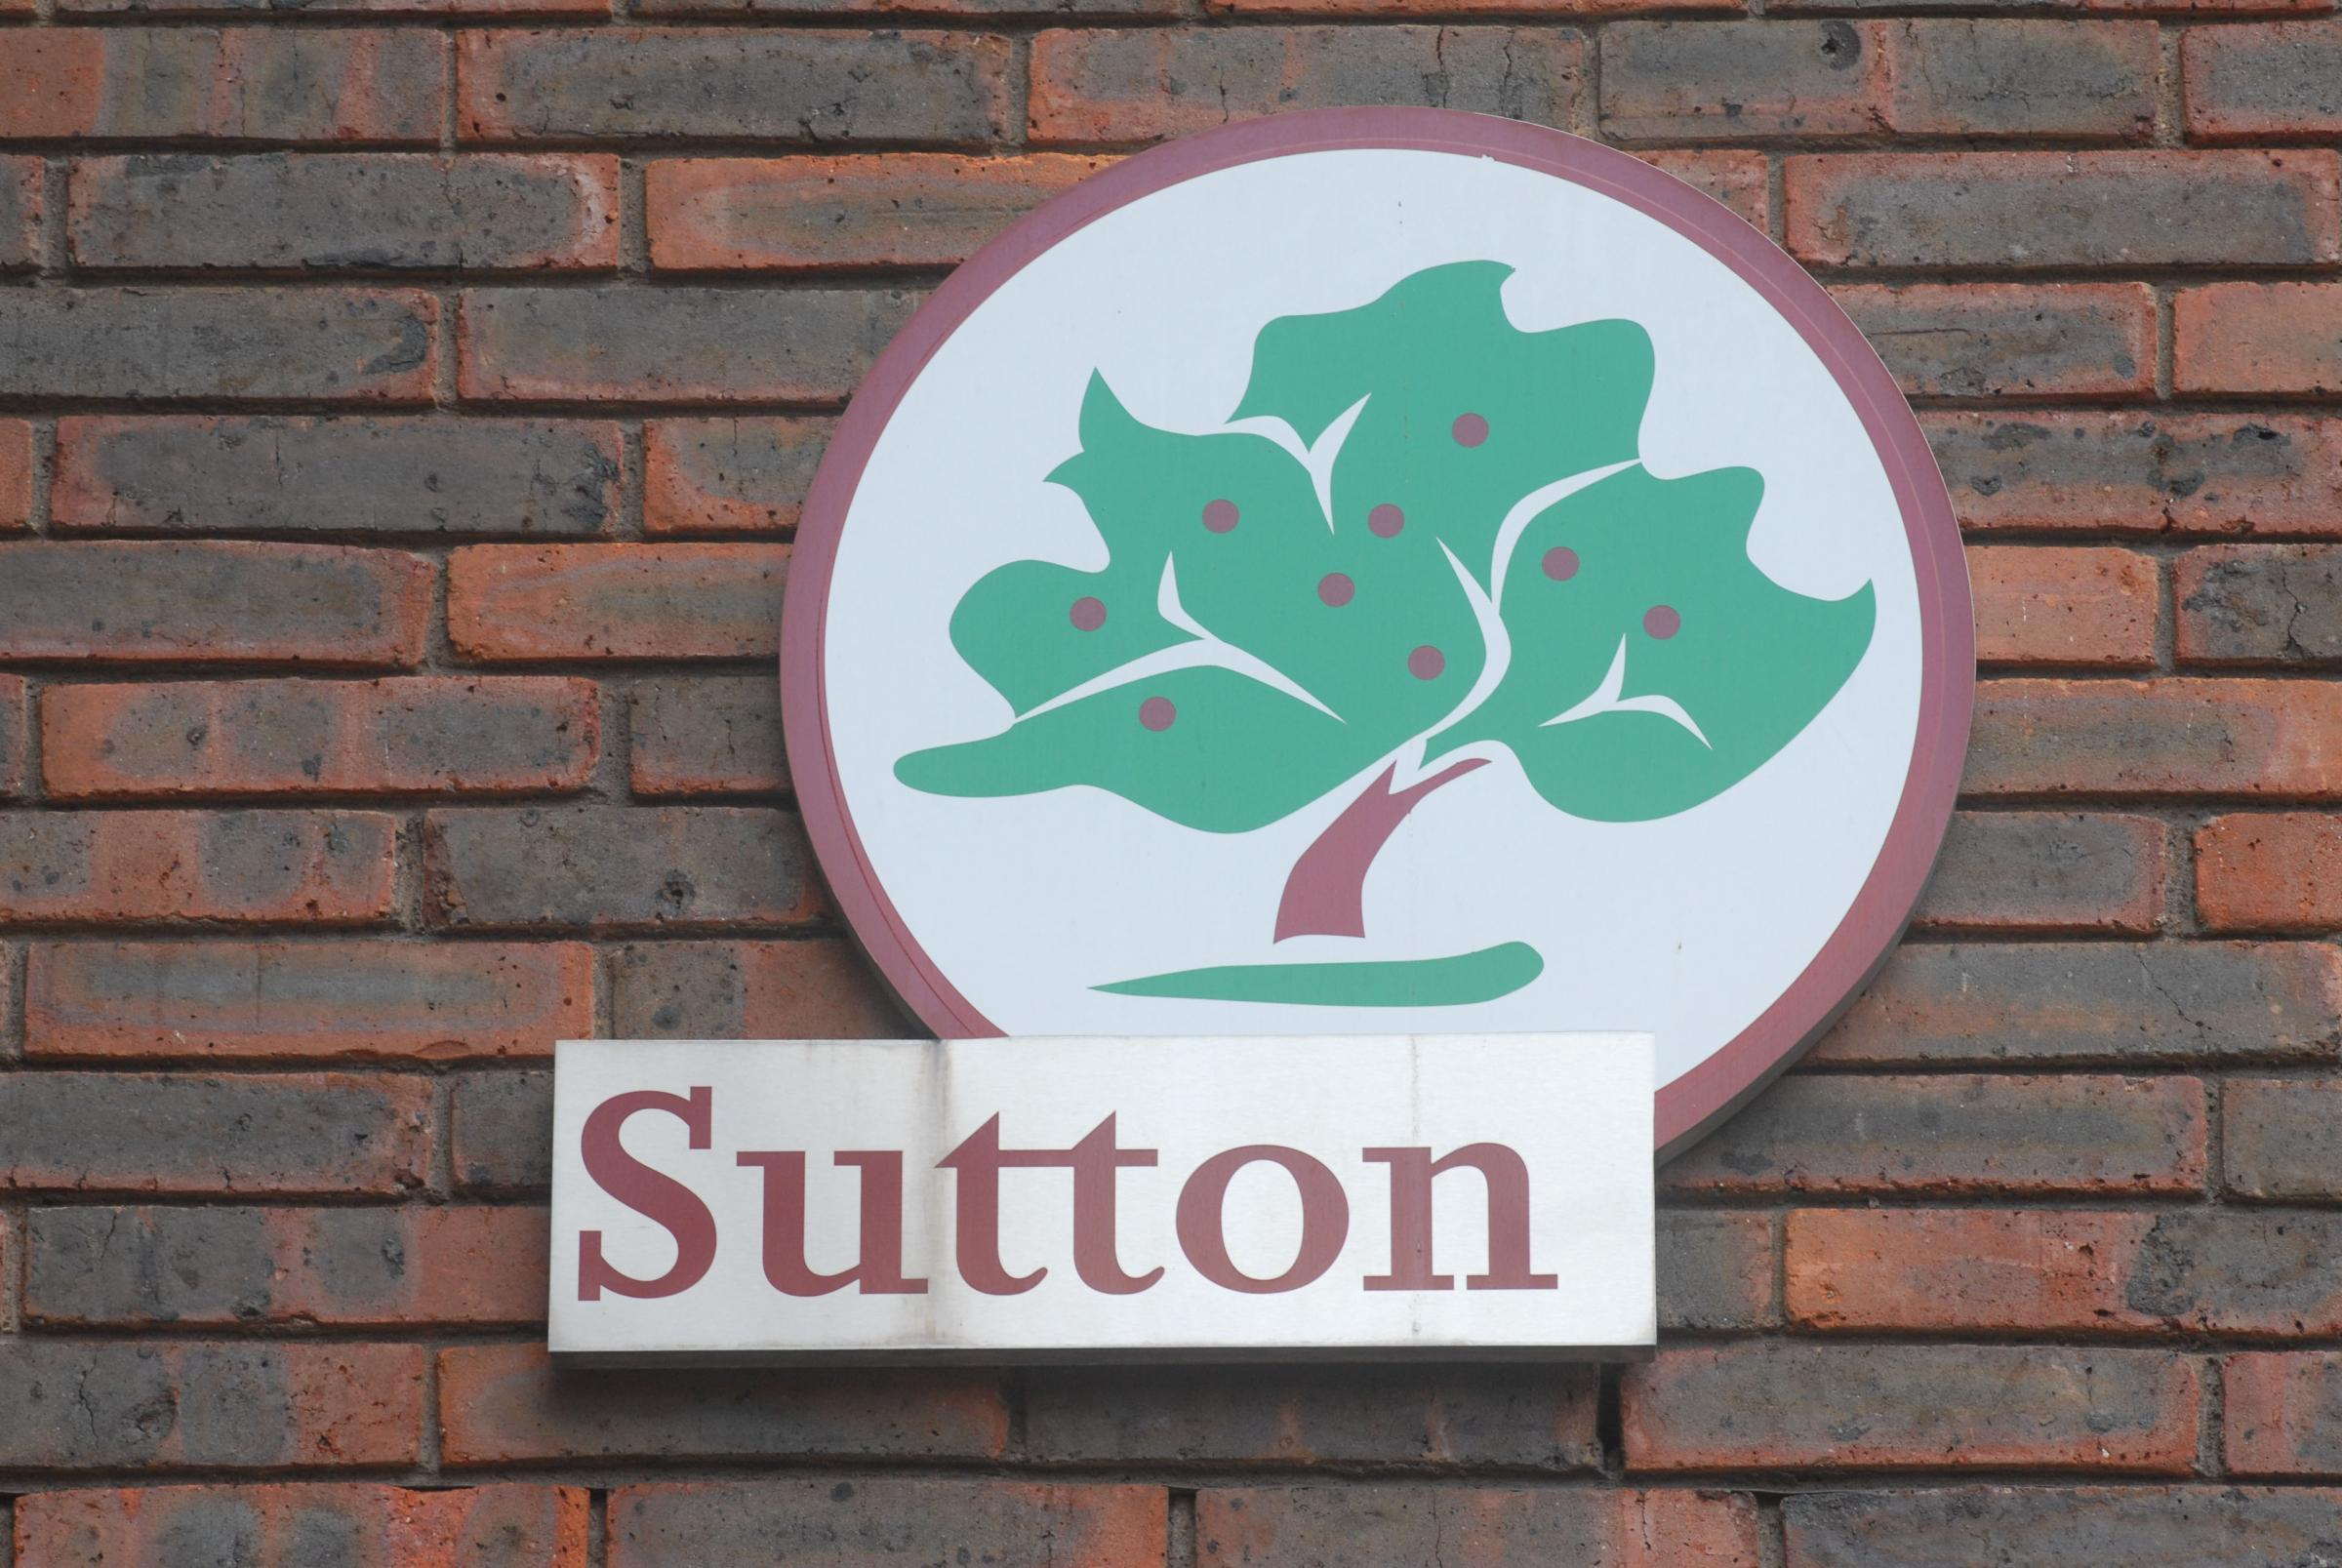 Sutton residents are being warned after this latest incident